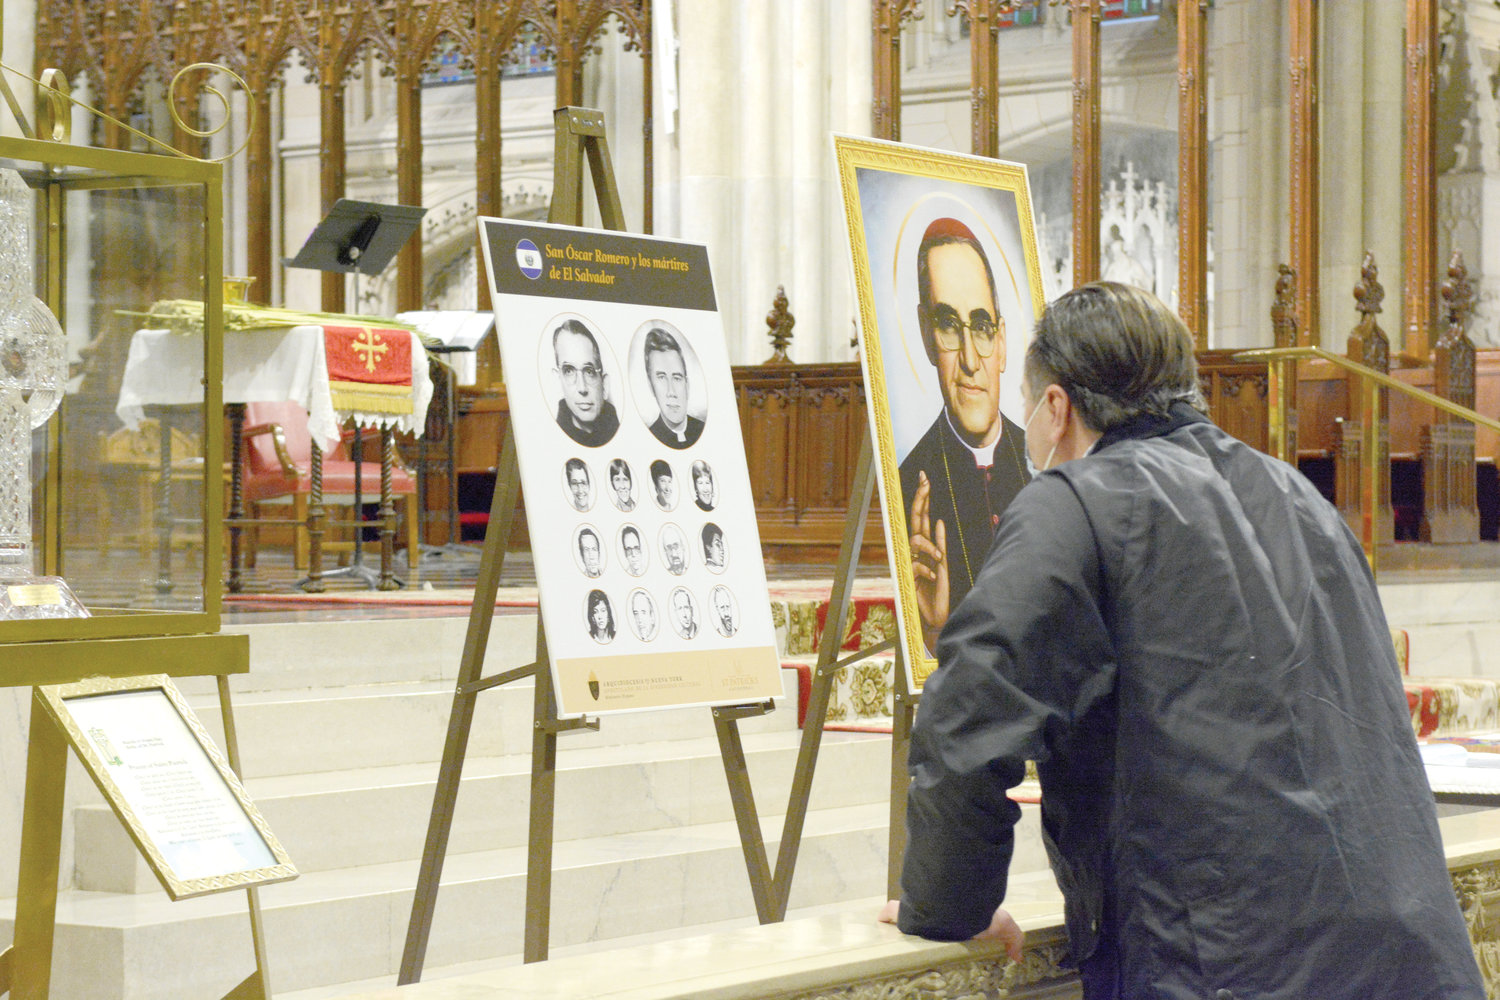 A man observes an altar-steps display March 28 before a Mass honoring St. Oscar Romero at St. Patrick's Cathedral. St. Romero, assassinated March 24, 1980, was archbishop of San Salvador. The Palm Sunday Mass was also offered in honor of the Martyrs of El Salvador. Auxiliary Bishop Luis Romero Fernandez of Rockville Centre served as principal celebrant and homilist.